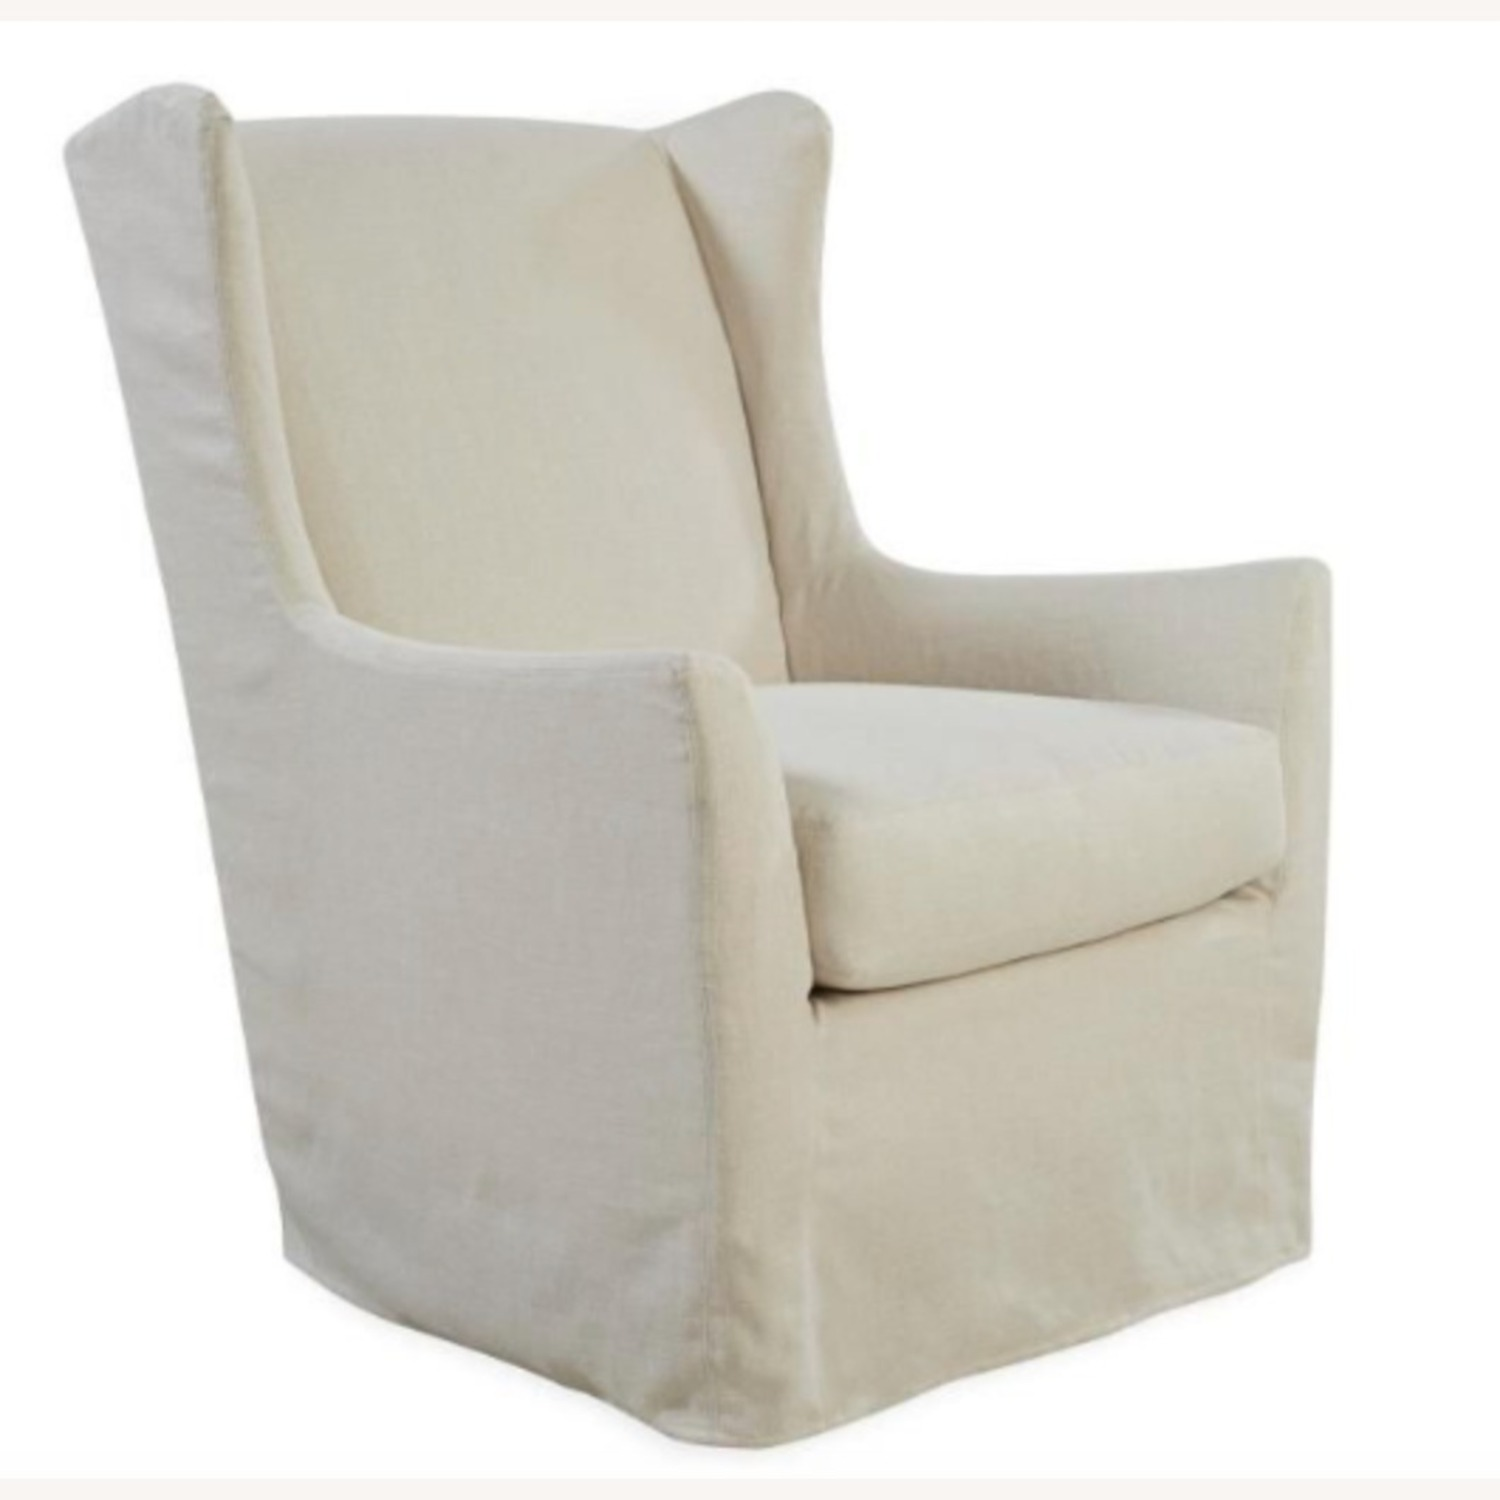 Lee Armchair Chair in Natural Colored Slipcover